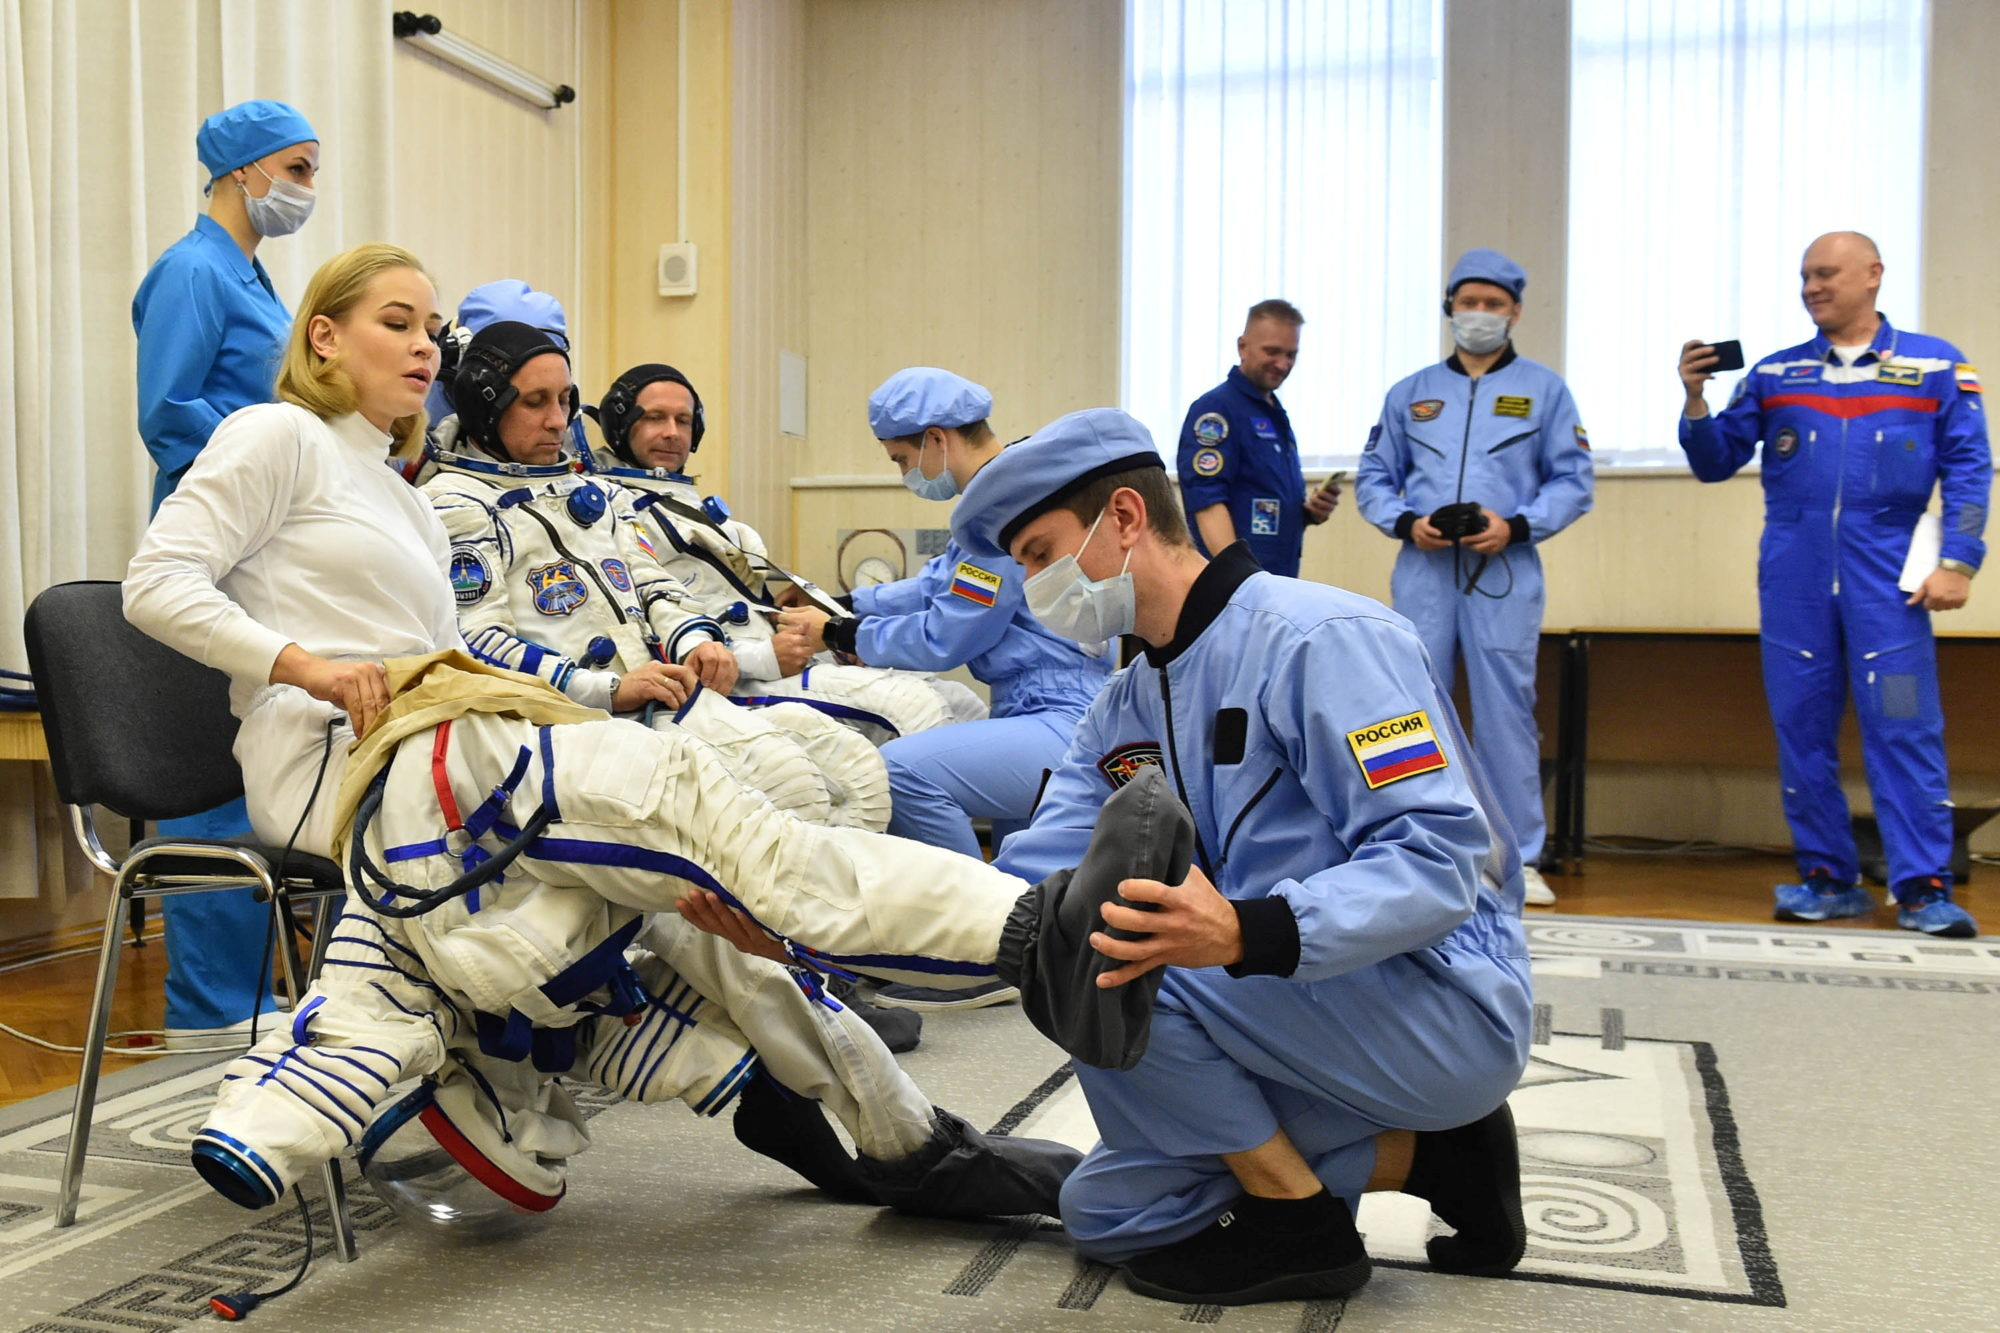 The International Space Station (ISS) crew members donning space suits shortly before the launch at the Baikonur Cosmodrome